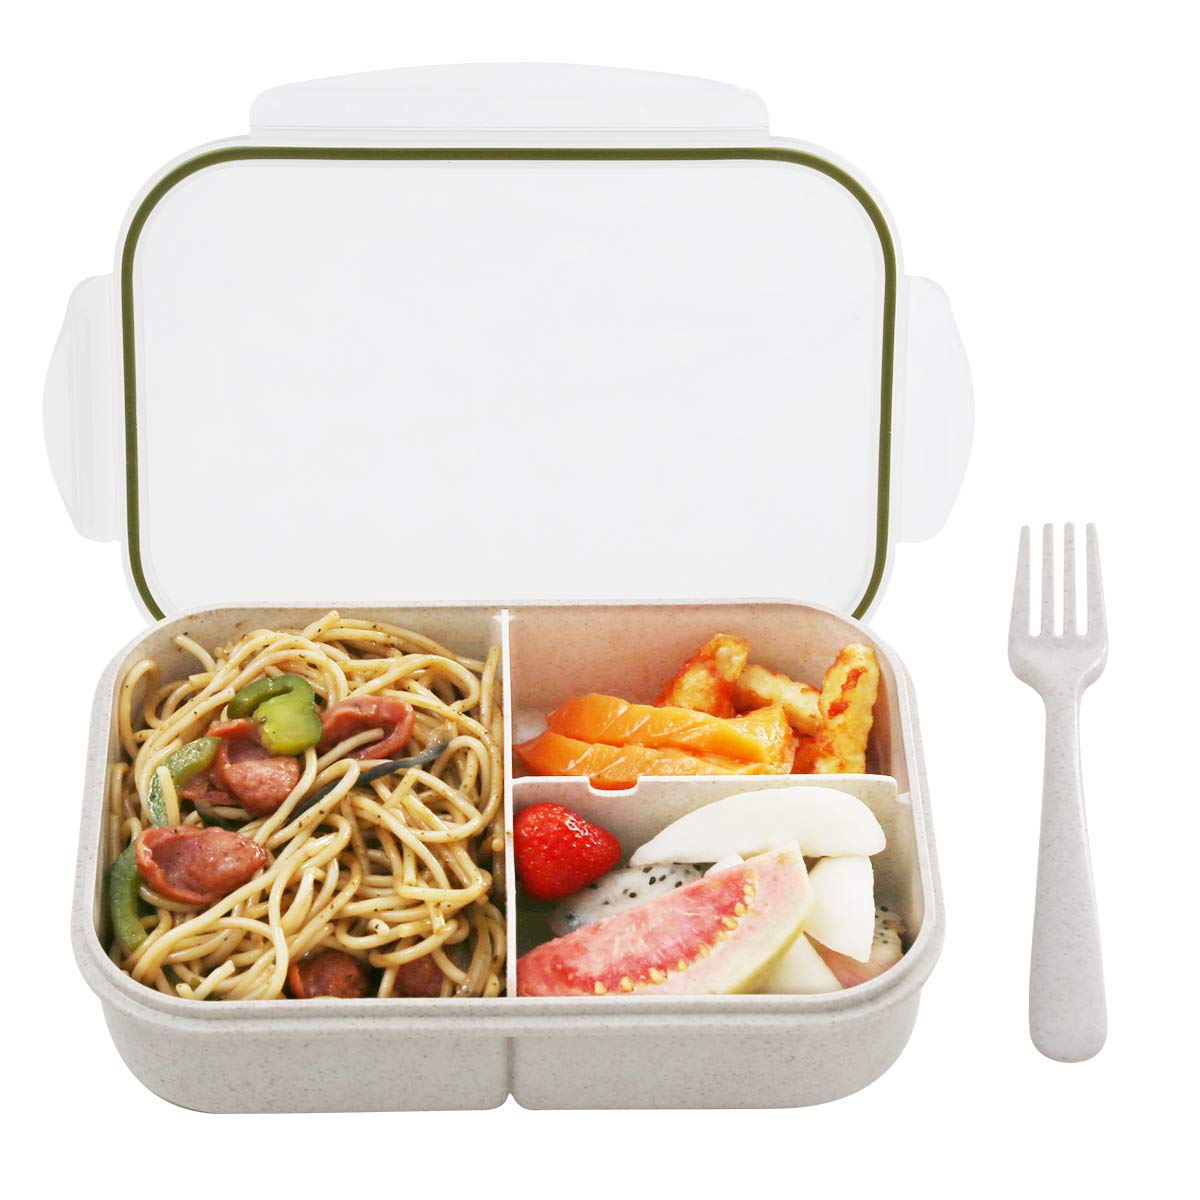 Leakproof With 3 Compartments FDA Approved and BPA-Free Bento Lunch containers For Kids By BusyMouth Bento Box,Bento Box for Kids